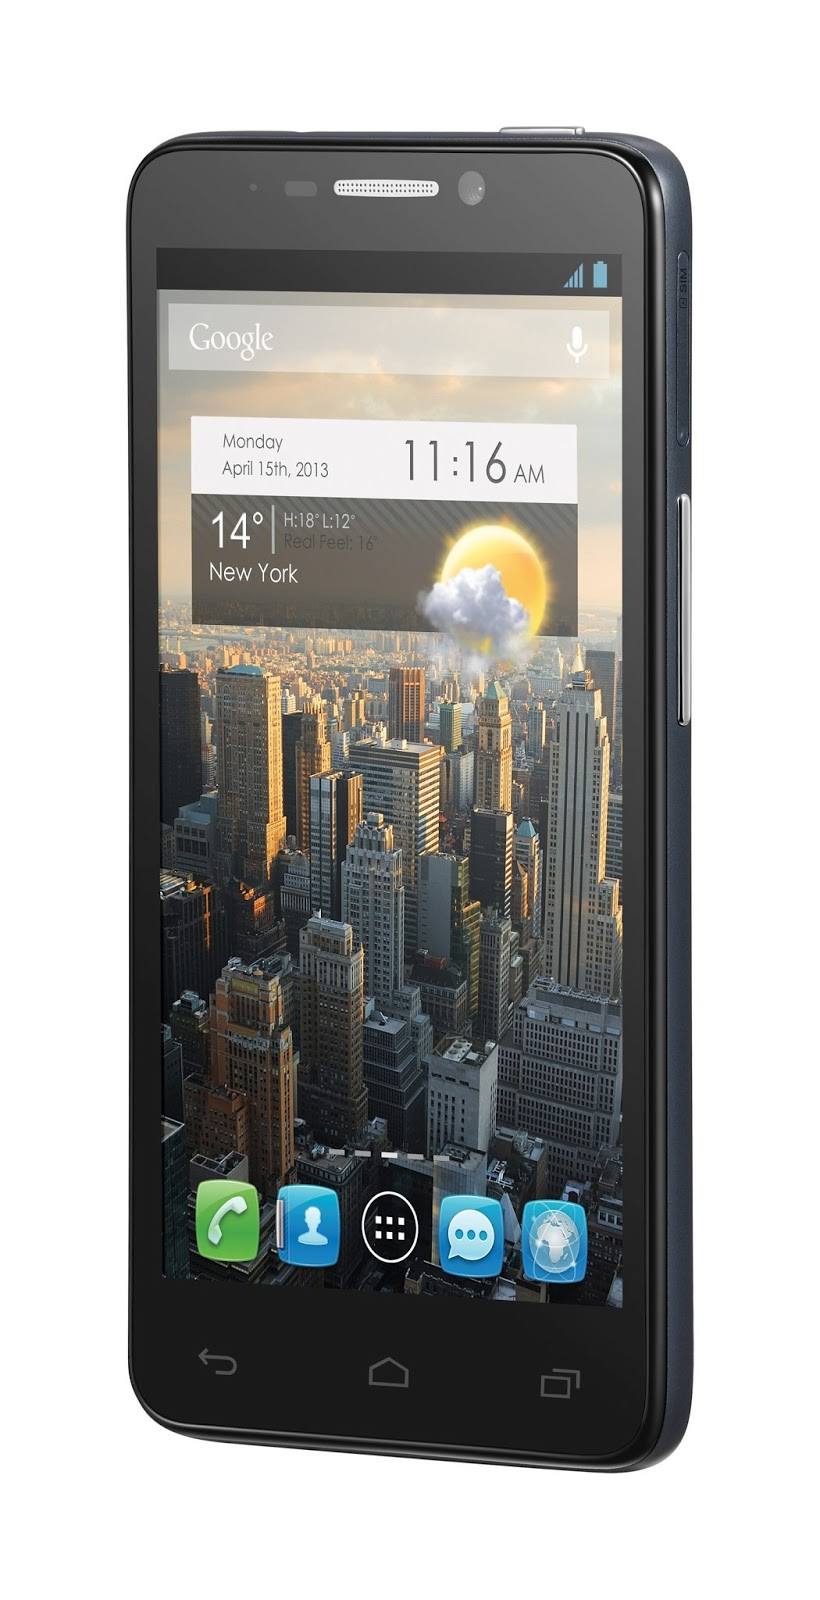 Alcatel one touch idol 3 compare tariffs deals amp prices - We Are Big Fans Of The Franchise And Are Honored To Be Involved The One Touch Idol Is One Of Our Most Stylish Handsets And Now A Genuine Film Star